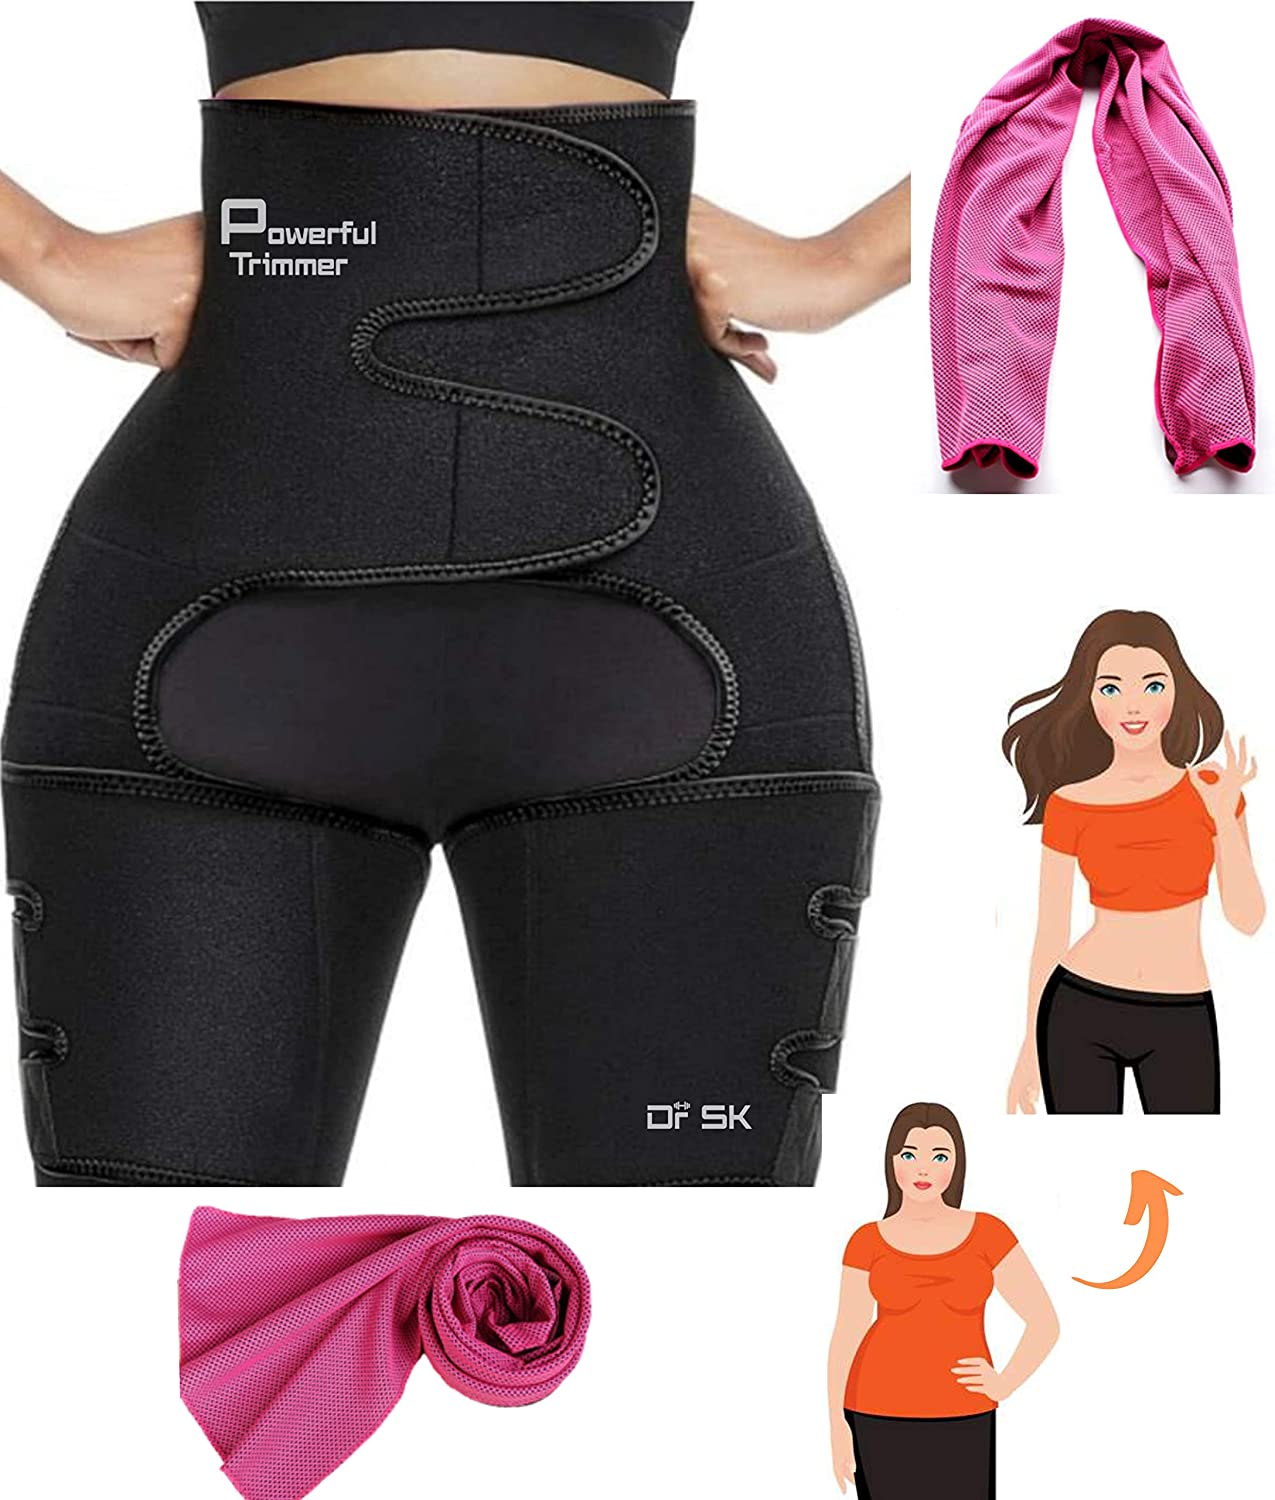 Adjustable 3 in 1 Body Shaper Thigh Trimmer Butt Lifter Slimming Support Fitness Sweat Belt for Tummy Control Weight Loss High Waist KRX Thigh Waist Trainer for Women